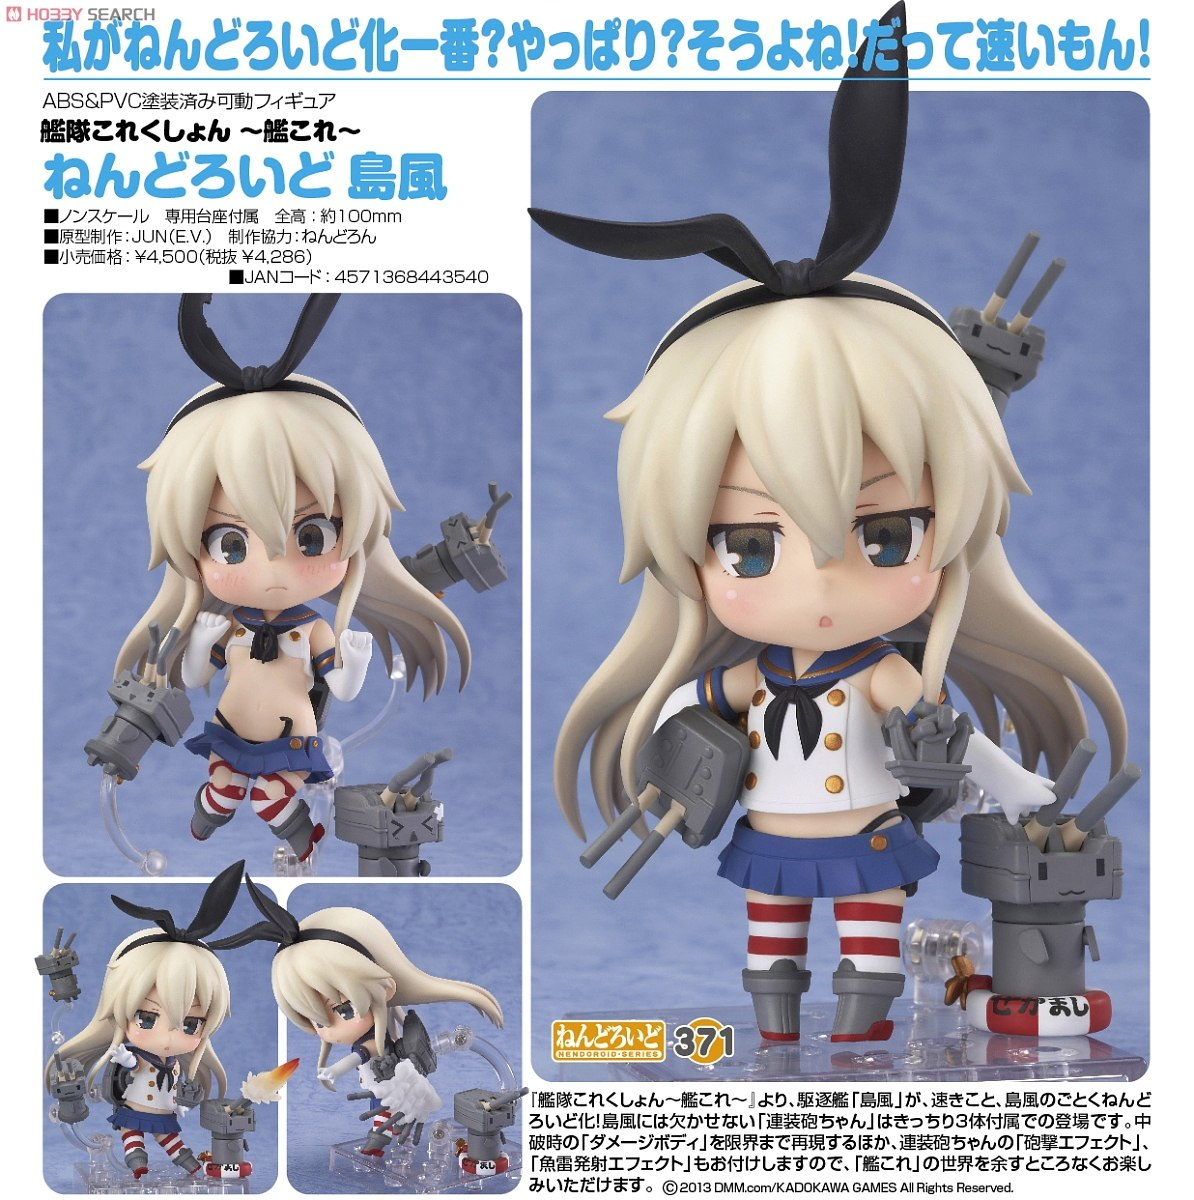 Nendoroid Shimakaze [Kantai Collection]